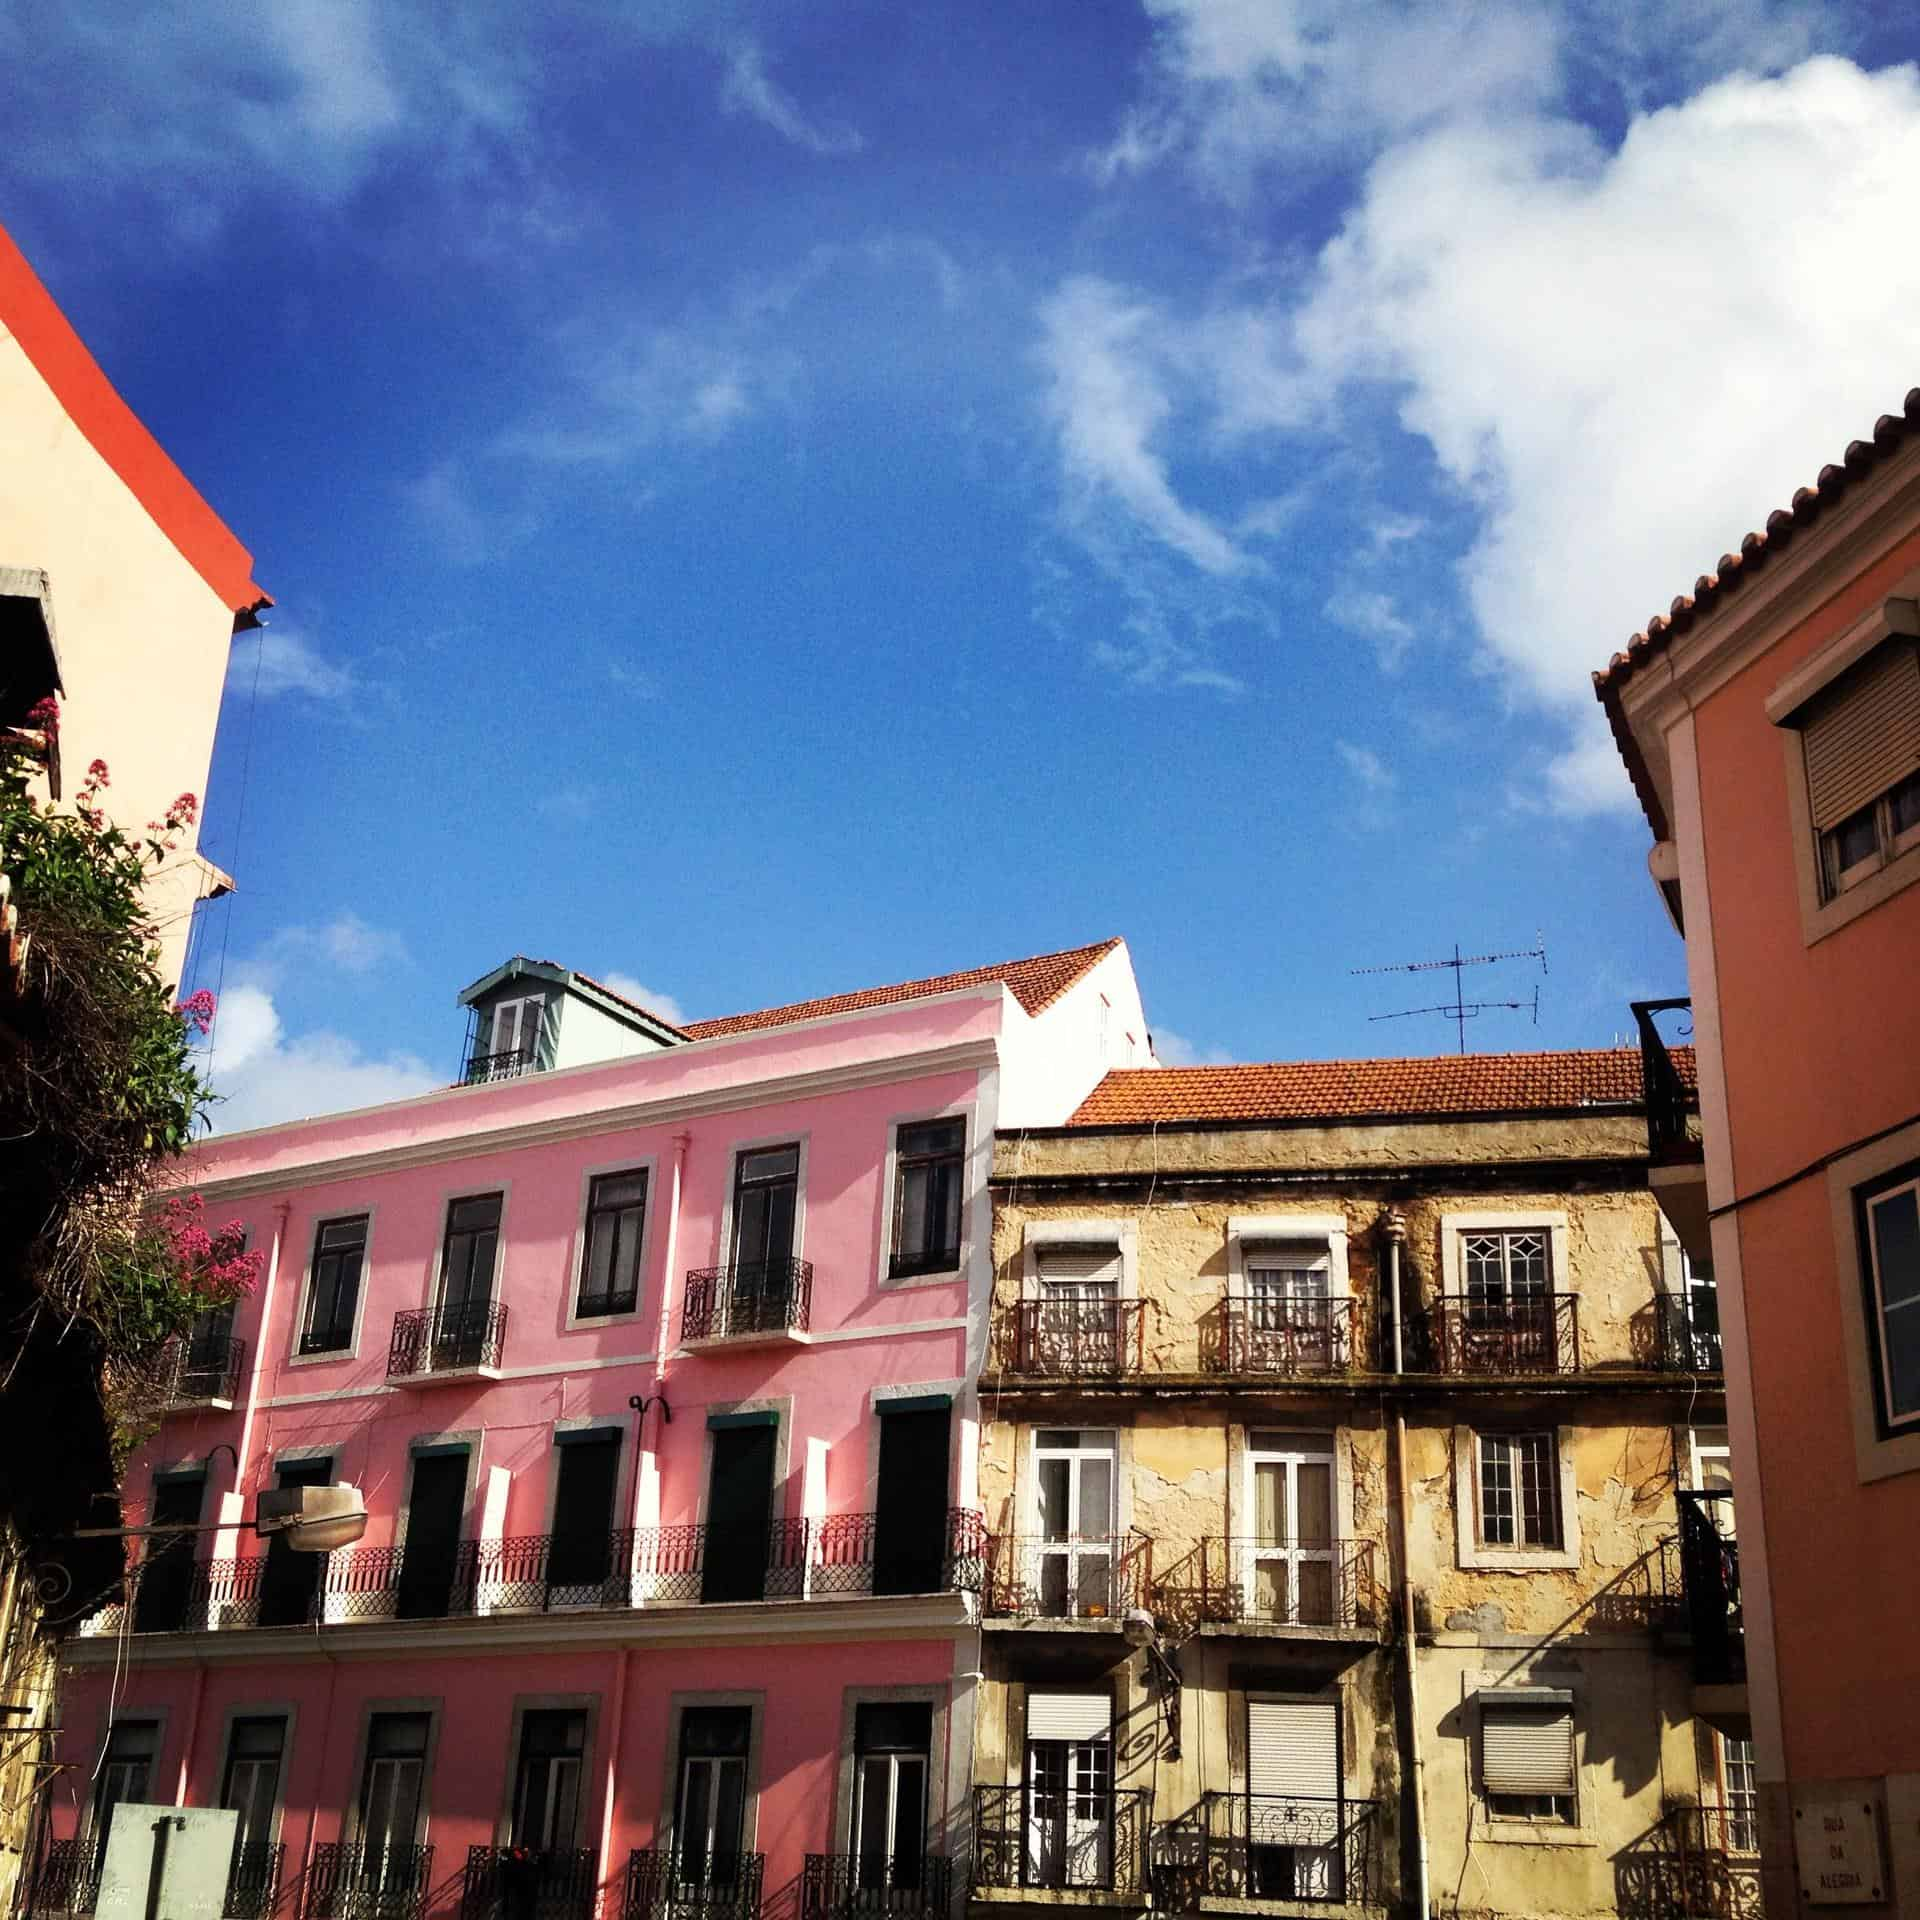 Typical brightly coloured buildings in Lisbon